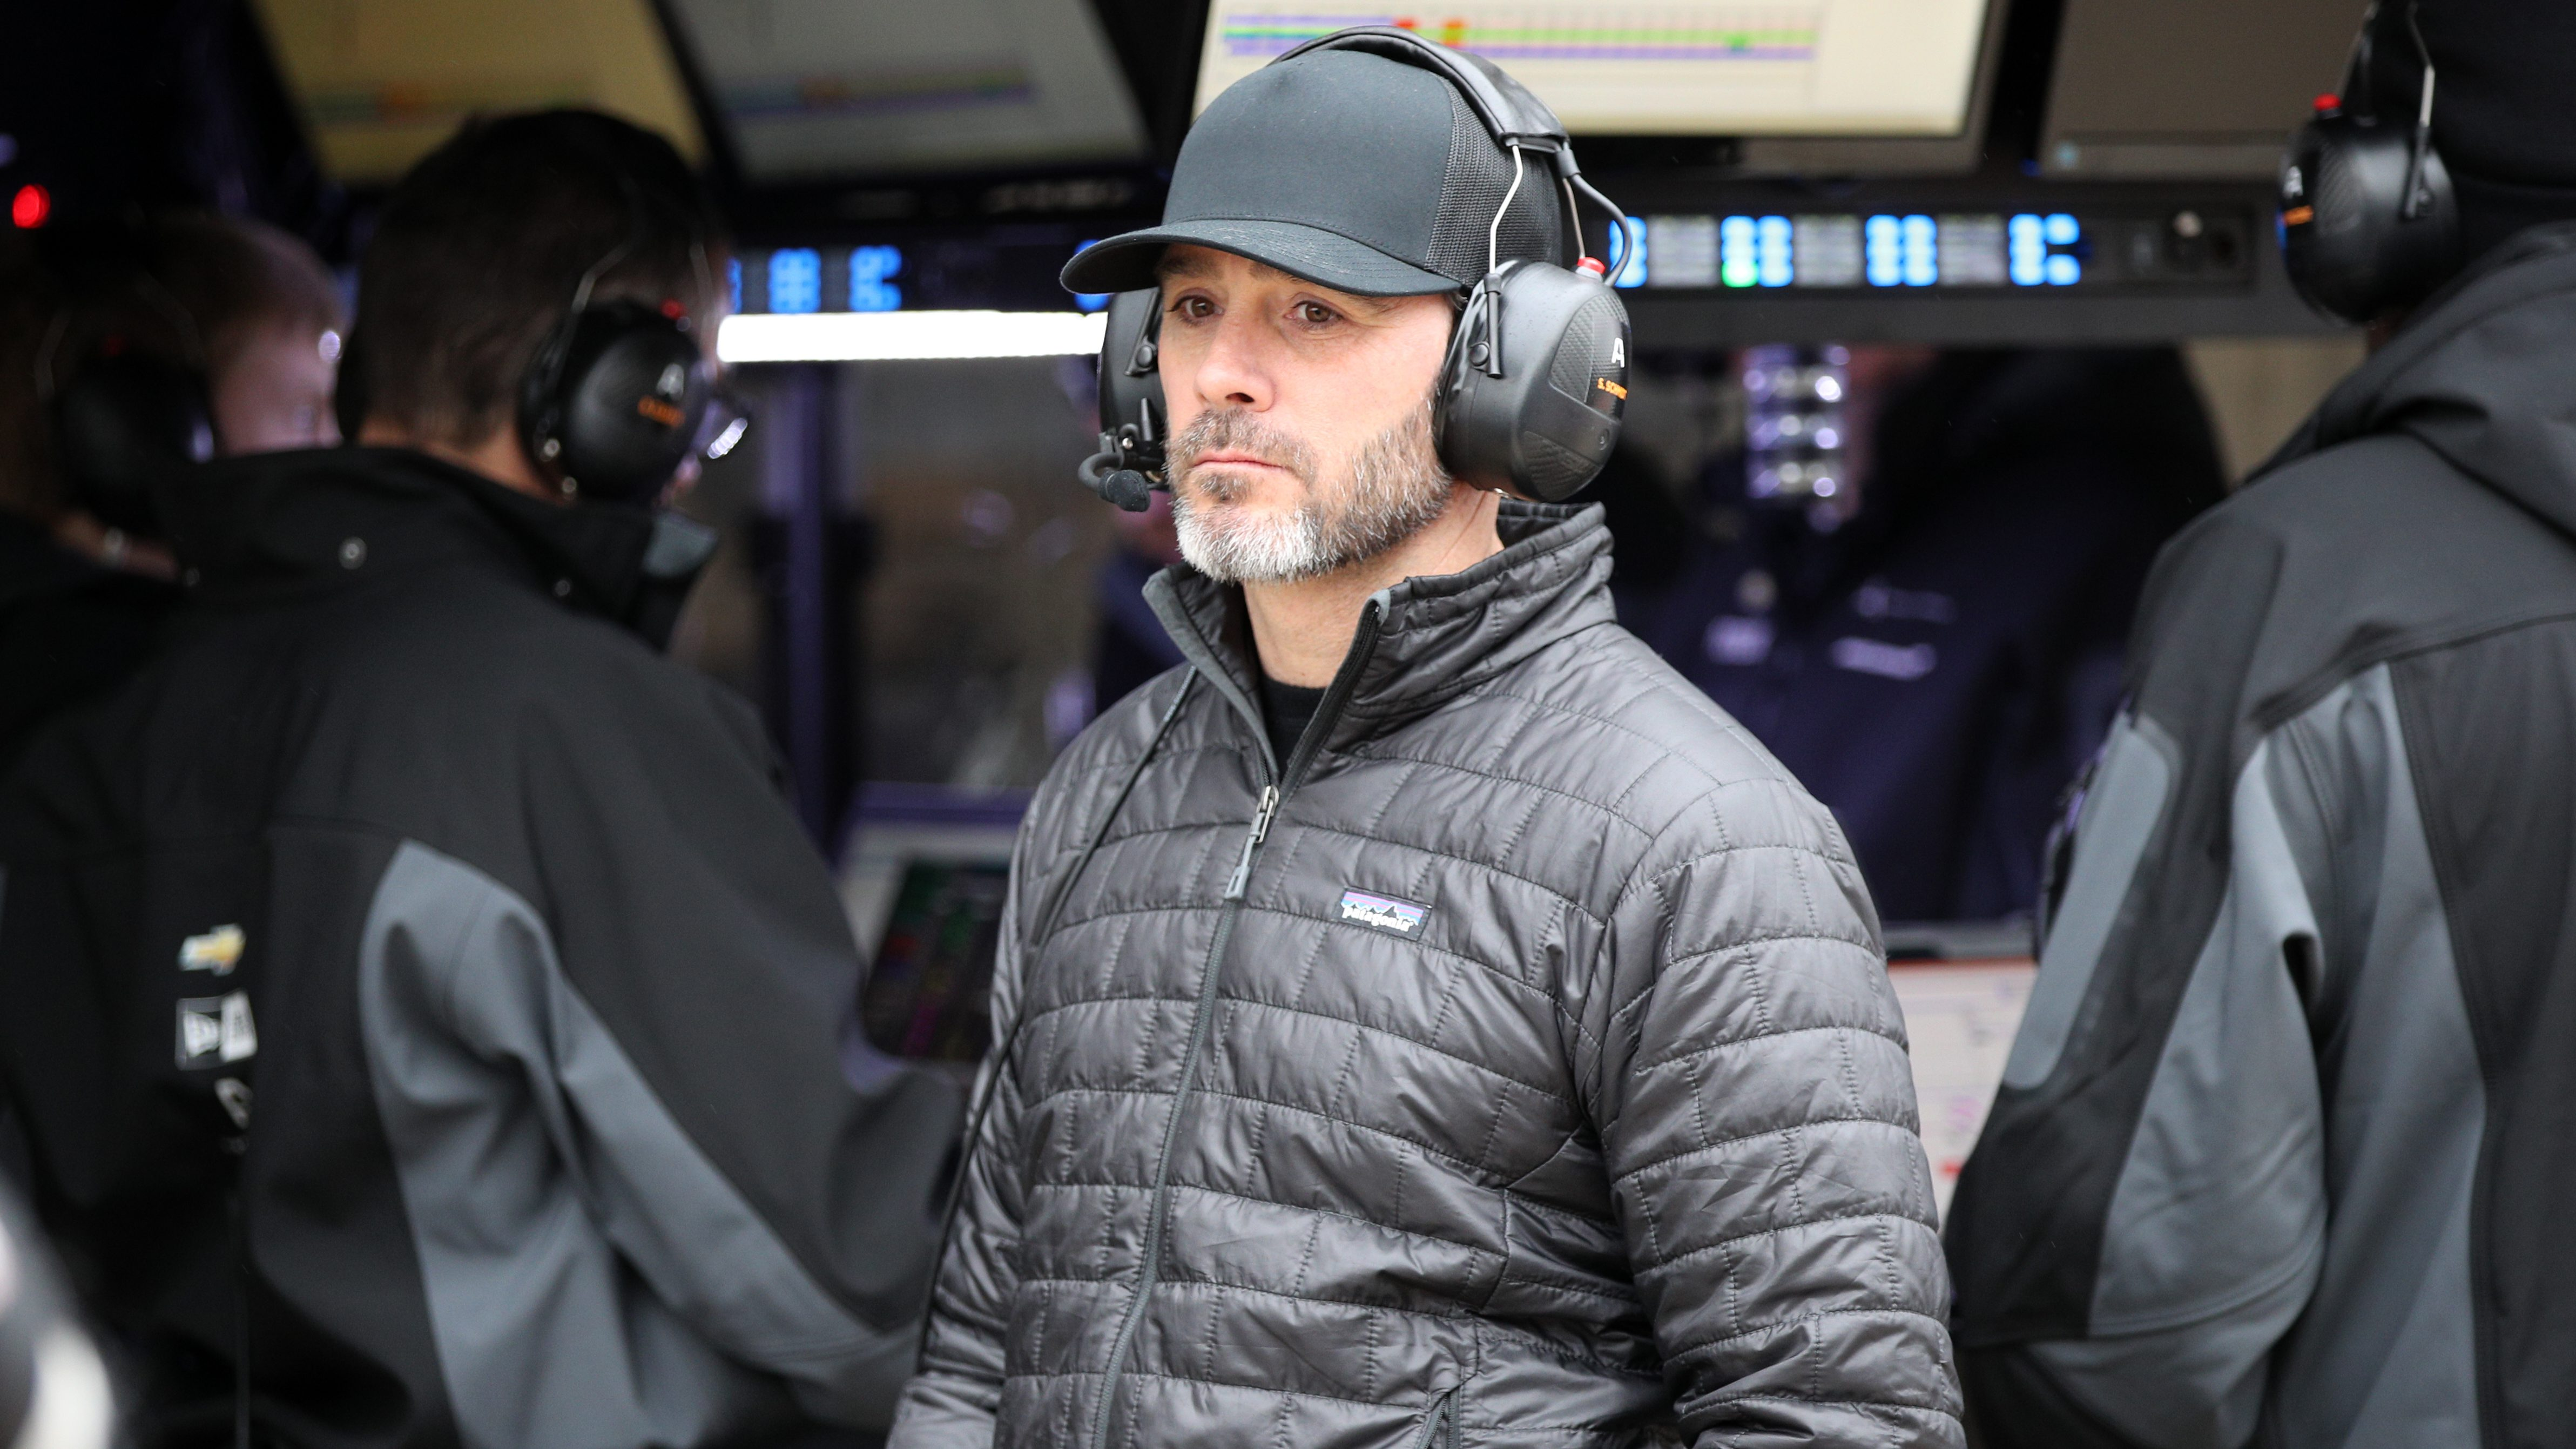 Jimmie Johnson reaffirms IndyCar remains on his bucket list - NBC Sports